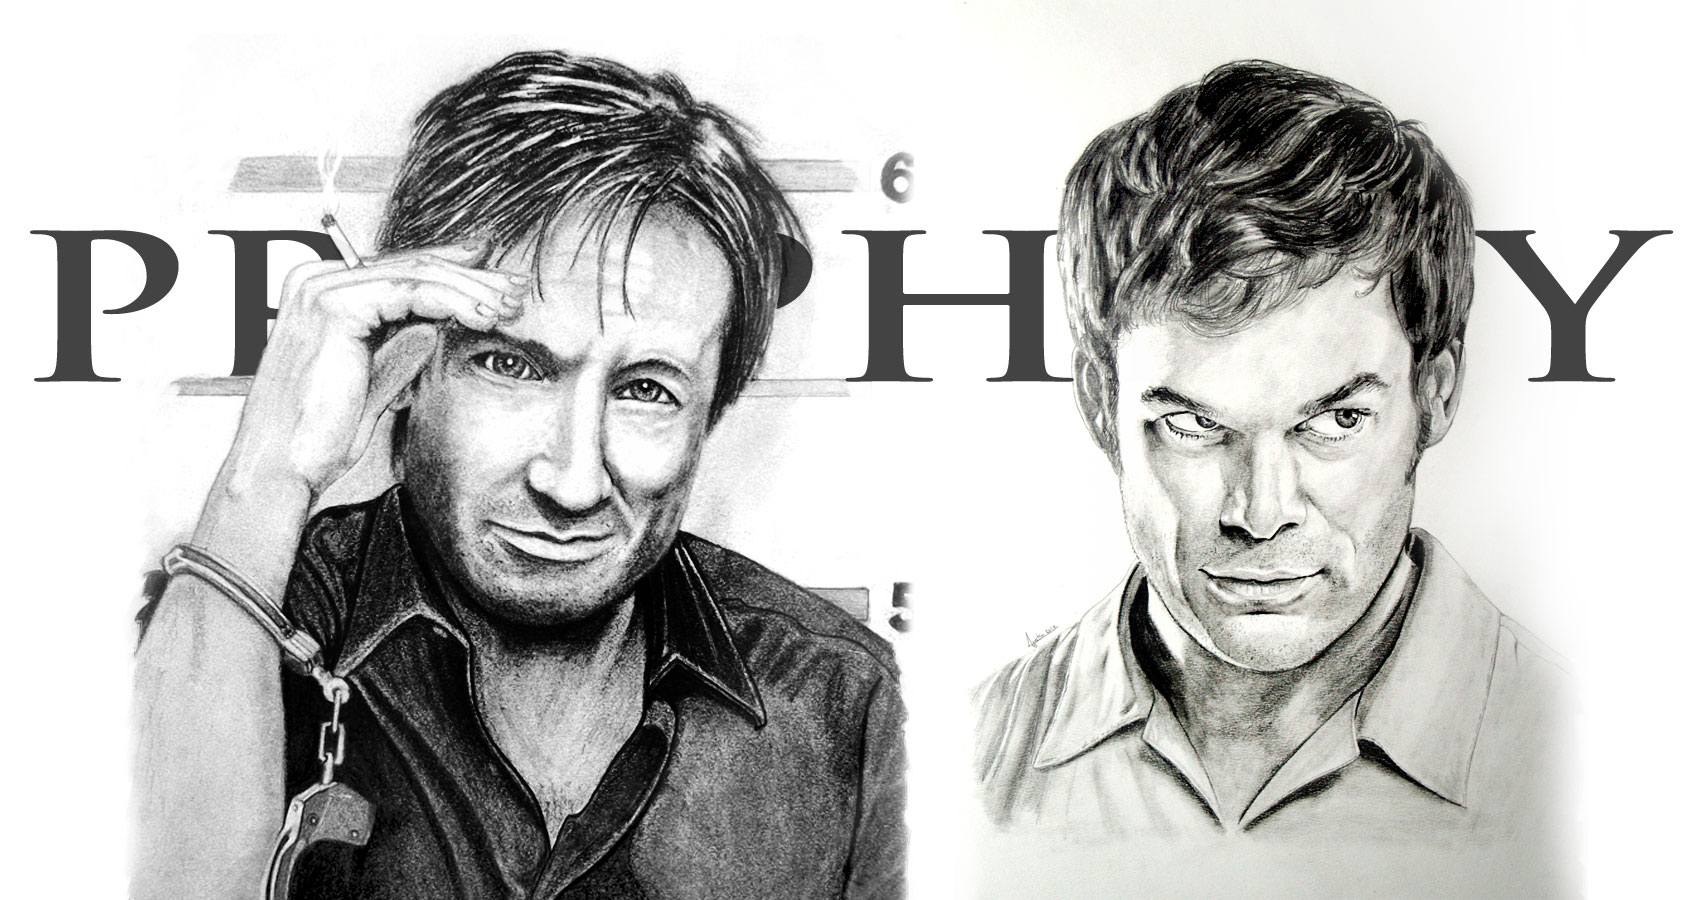 Hank Moody and Dexter Morgan (Prophecy) at Spillwords.com